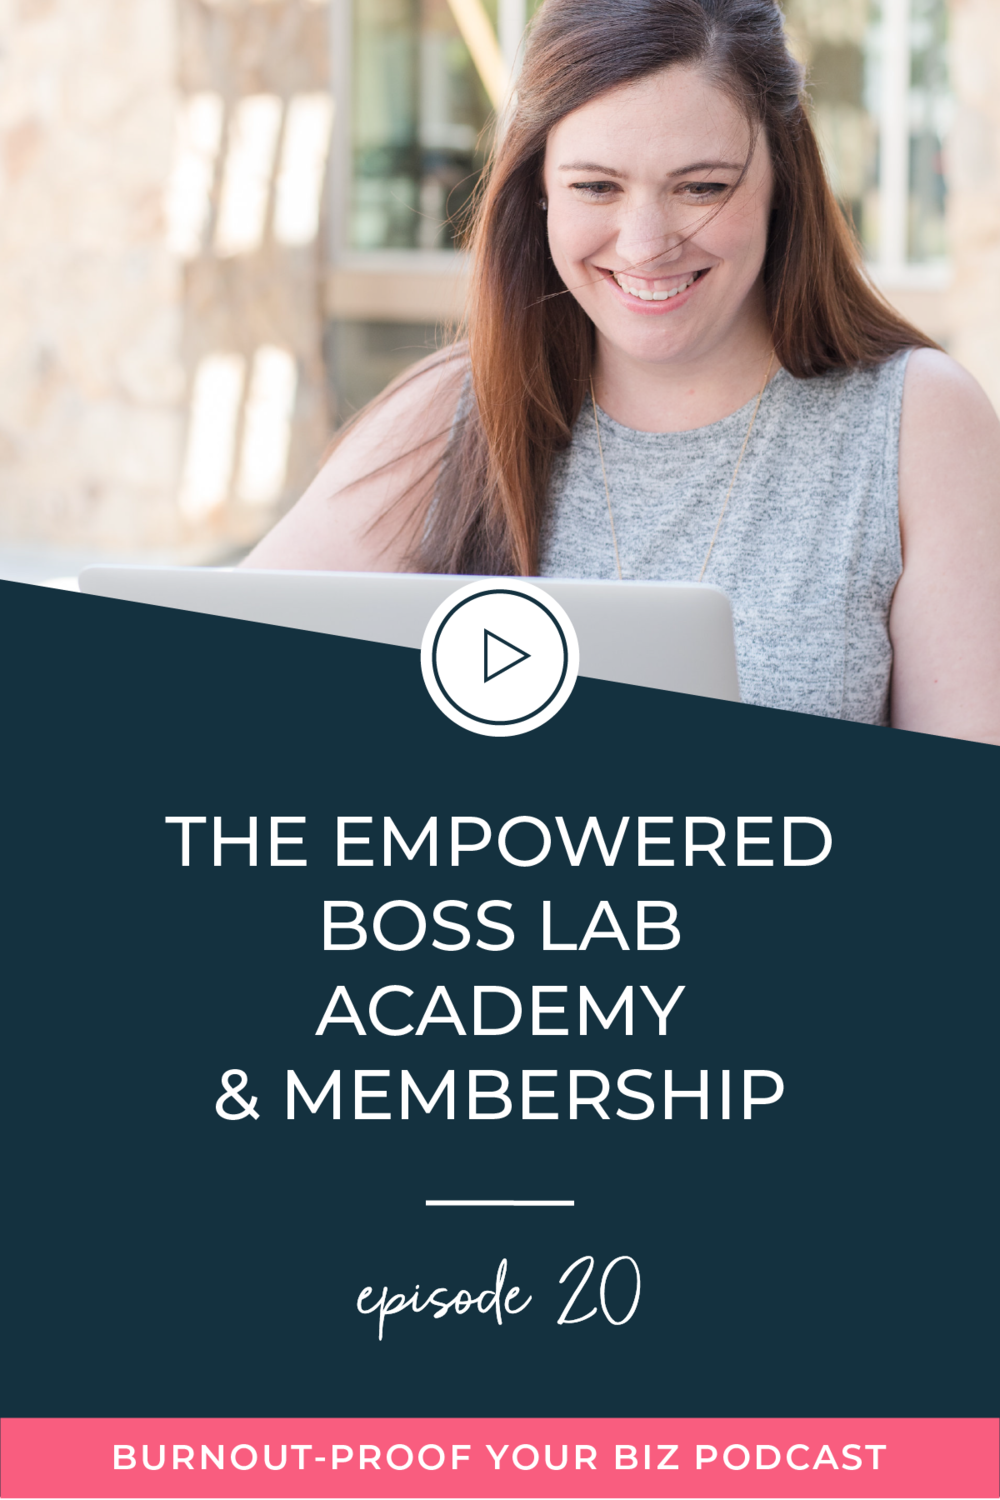 Burnout-Proof Your Biz Podcast with Chelsea B Foster | Episode 020 - The Empowered Boss Lab Academy & Membership | Learn how to run your biz and live your dream life on your own terms without the fear of burnout.